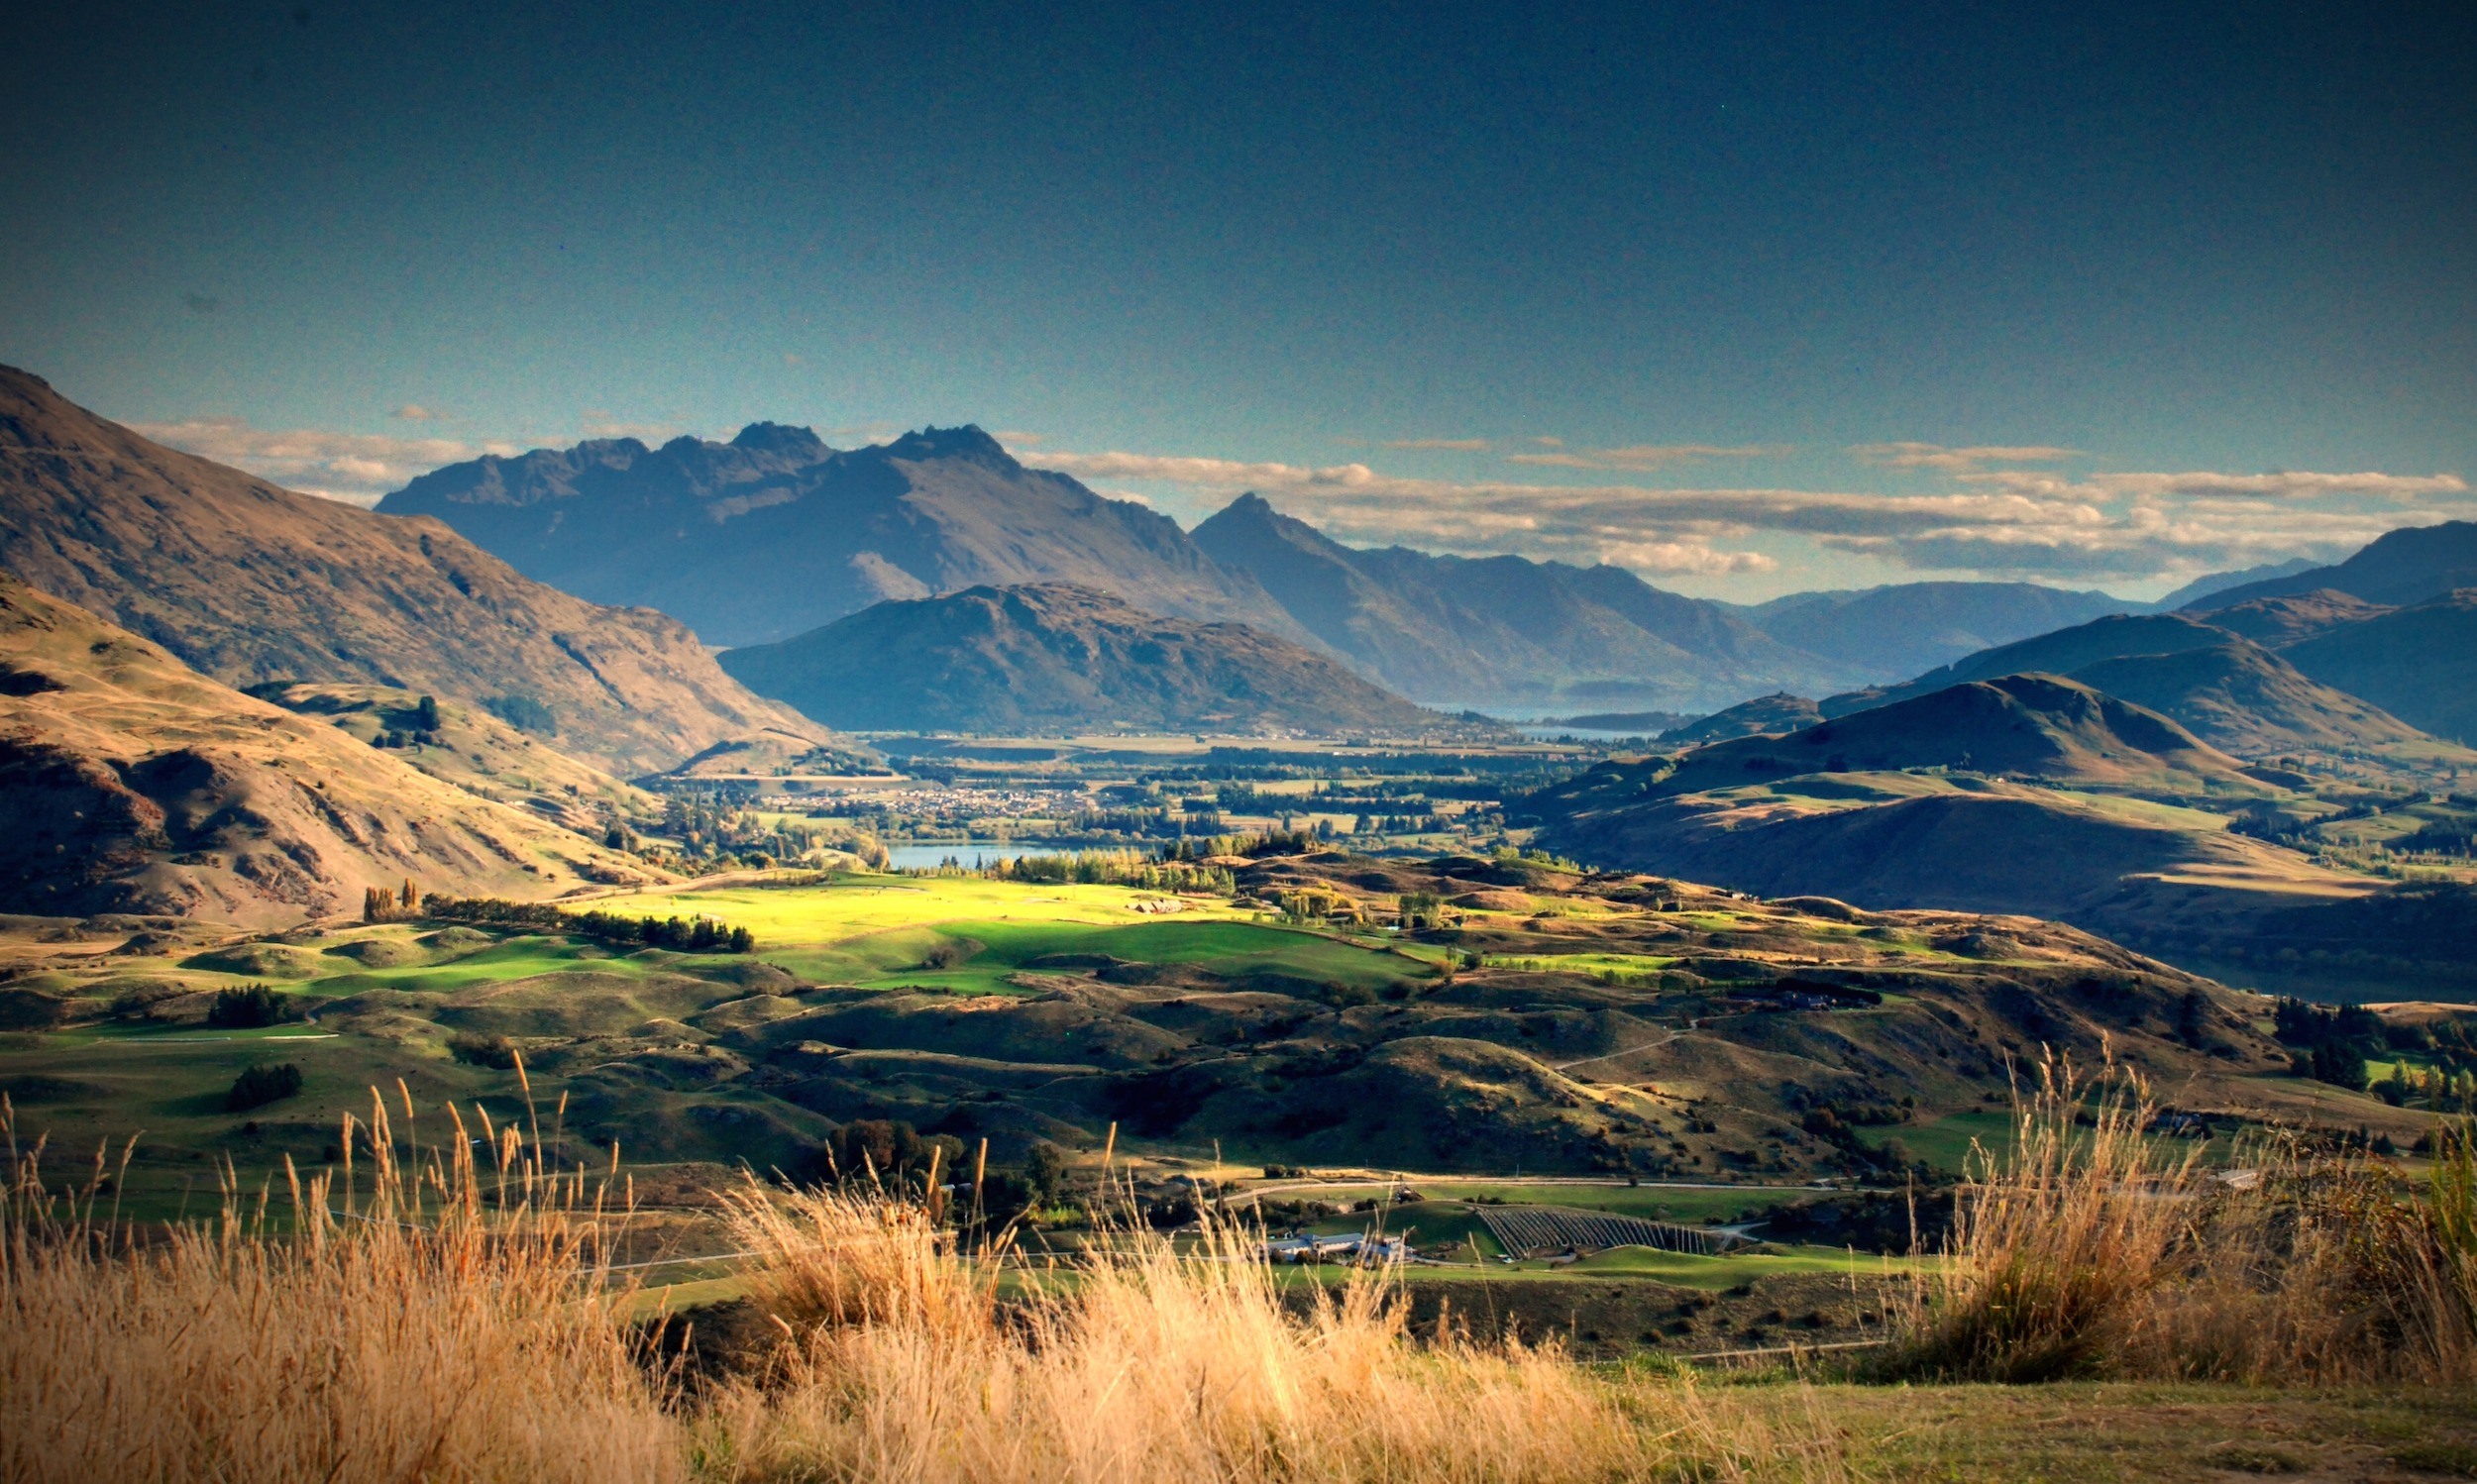 Hills and brown-coloured mountains surround the small historic Arrowtown